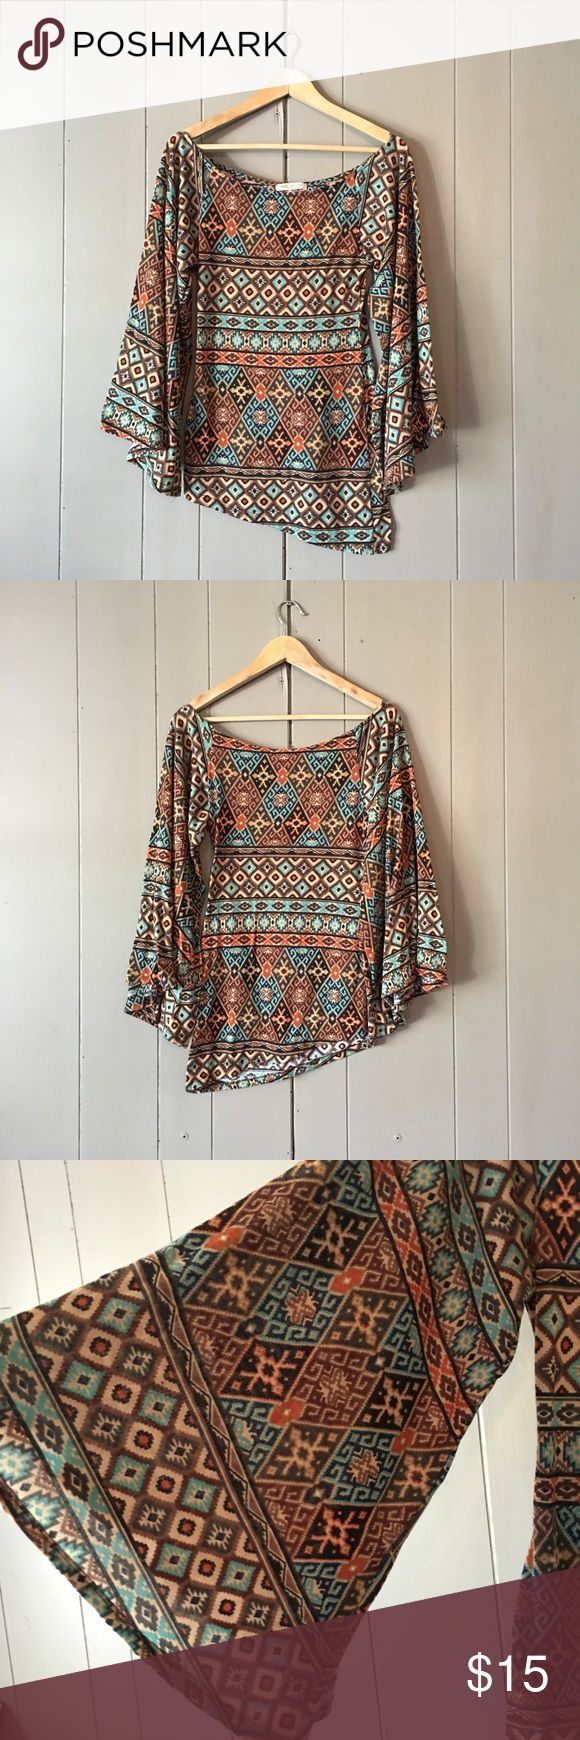 """Super chic Wide Sleeve Boho Tribal Aztec Top 🍃 Good used condition. Asymmetrical hem. Armpit to armpit is 16"""". Length is 26-29"""". Offers are welcome. ☺️ Arden B Tops"""